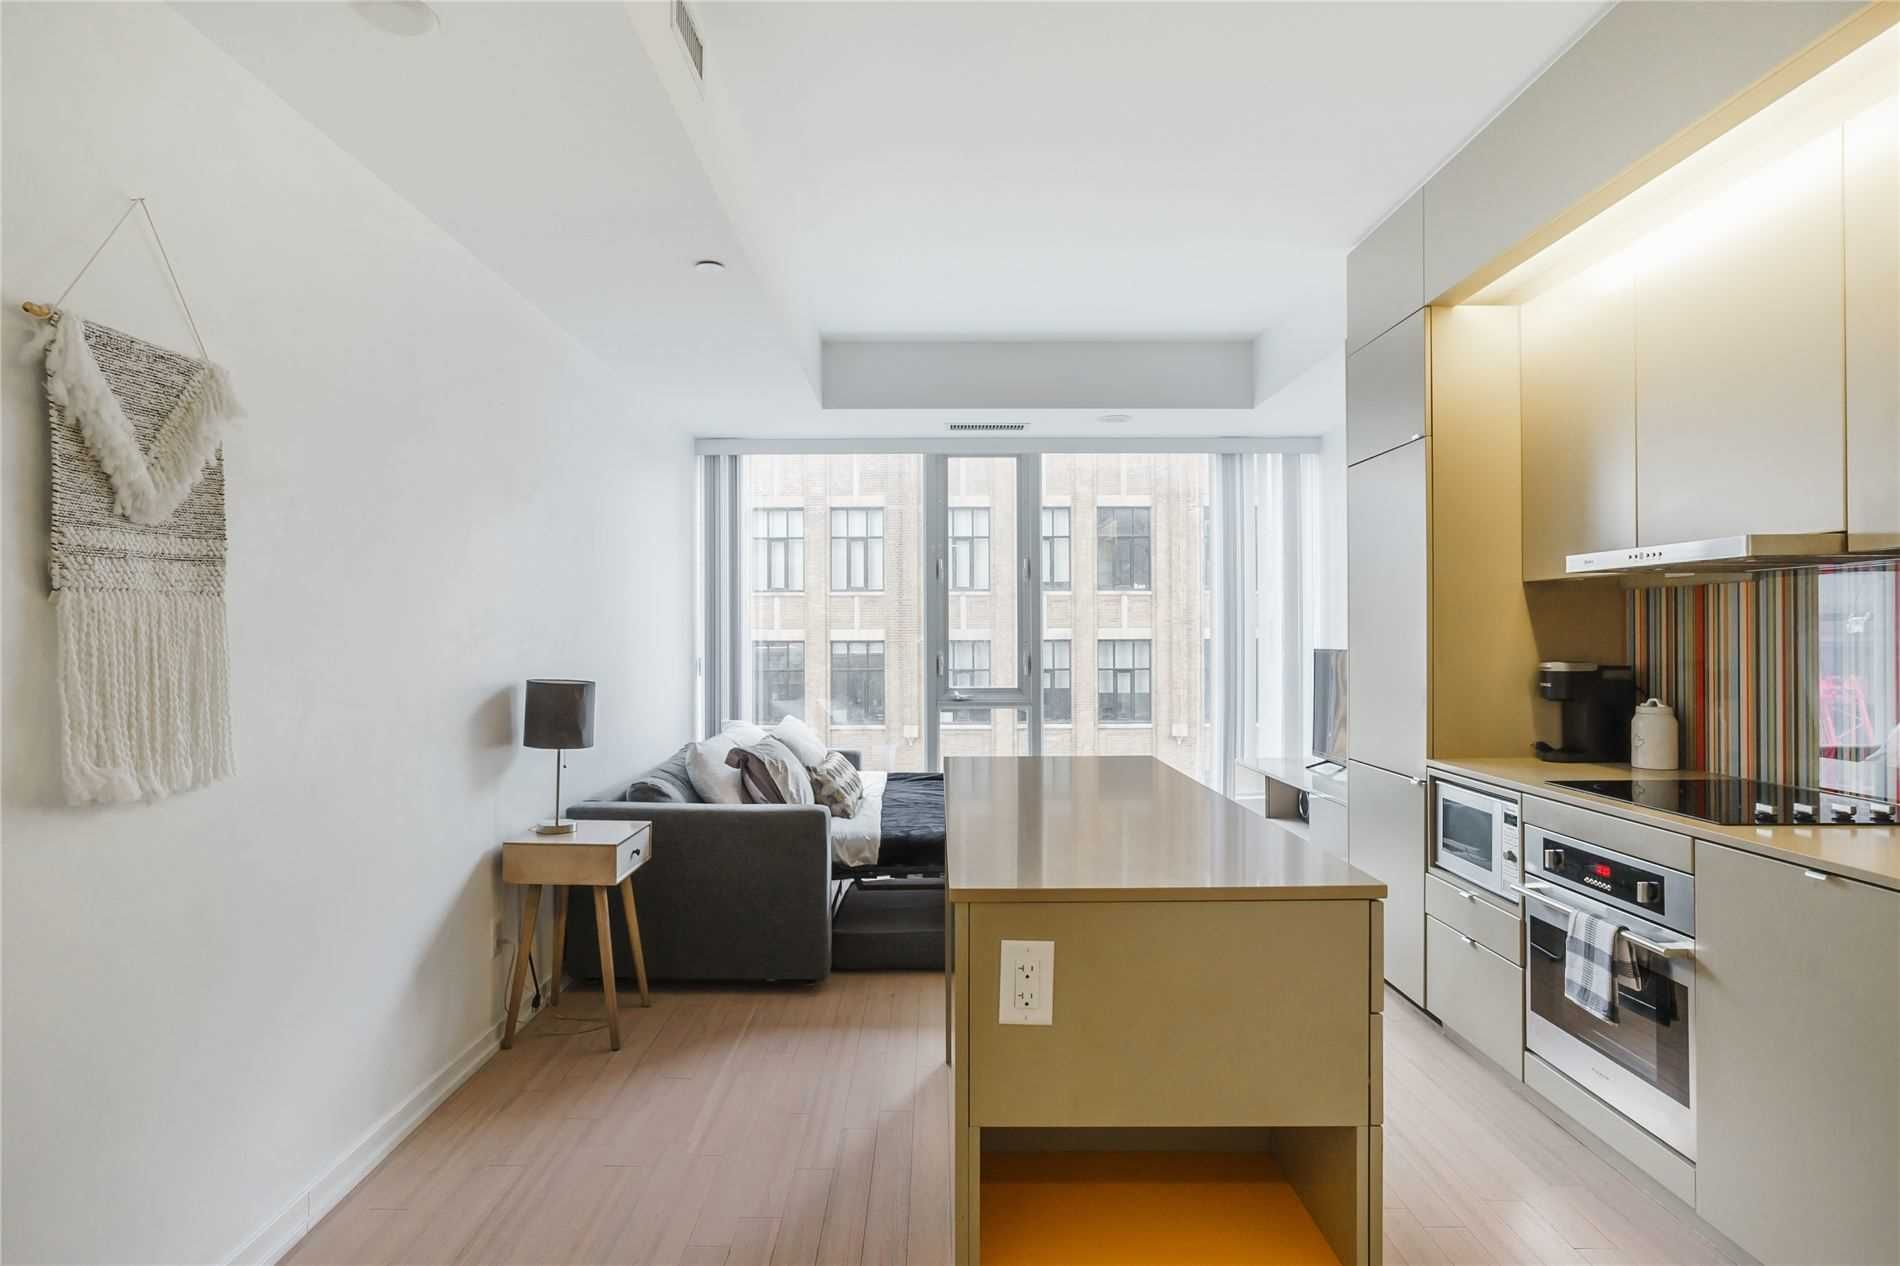 101 Peter St, unit 908 for sale in Queen West - image #1